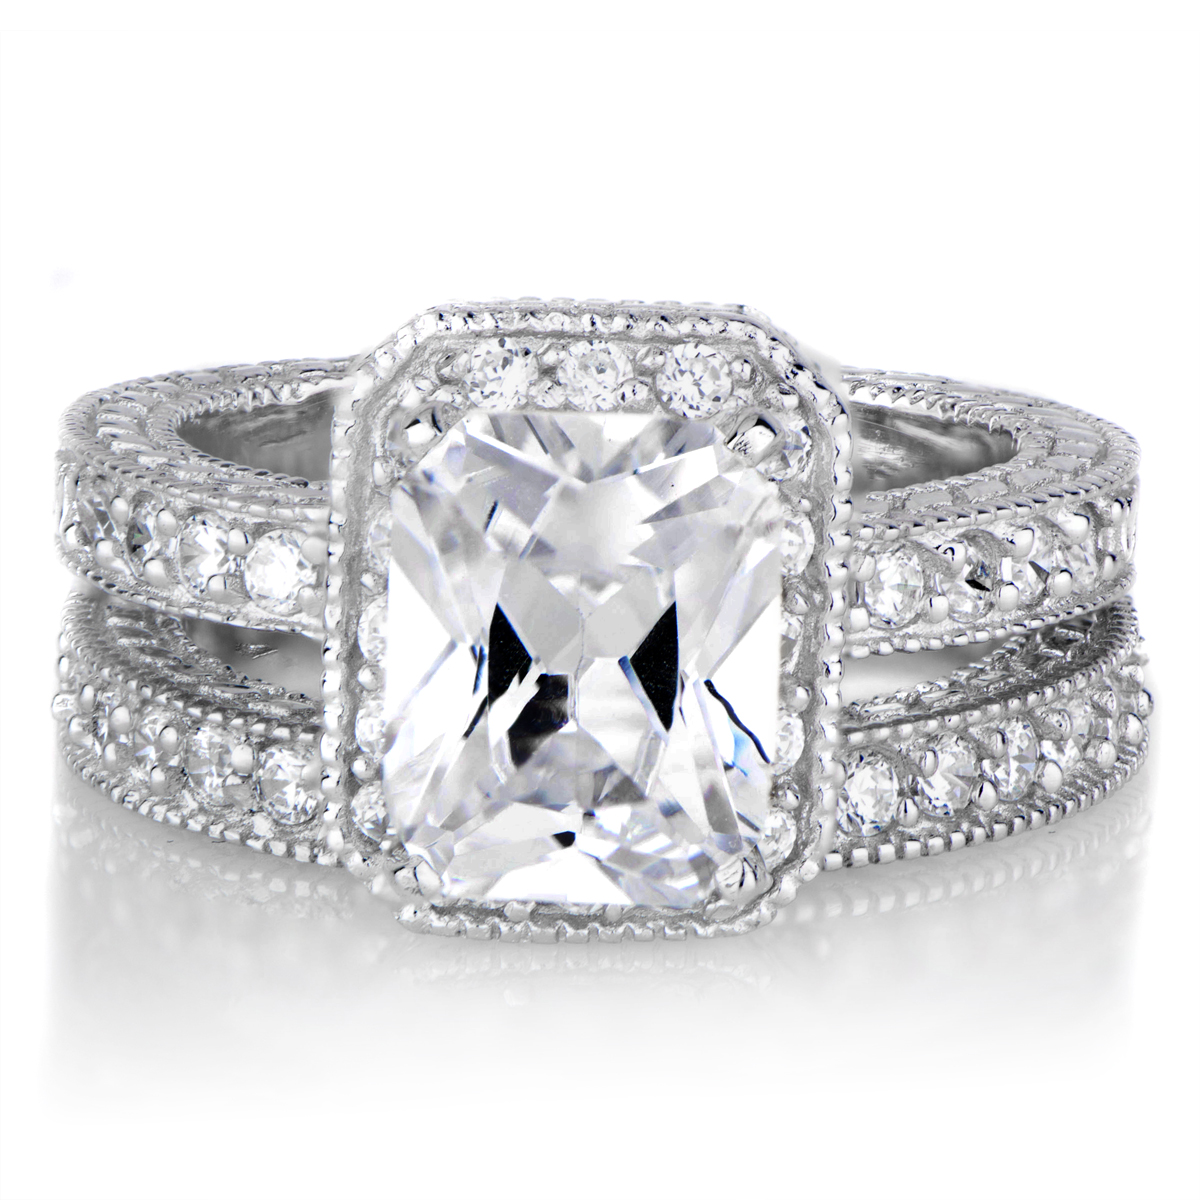 Buy Bridal Set Rings Online Roll Off Image To Close Zoom Window